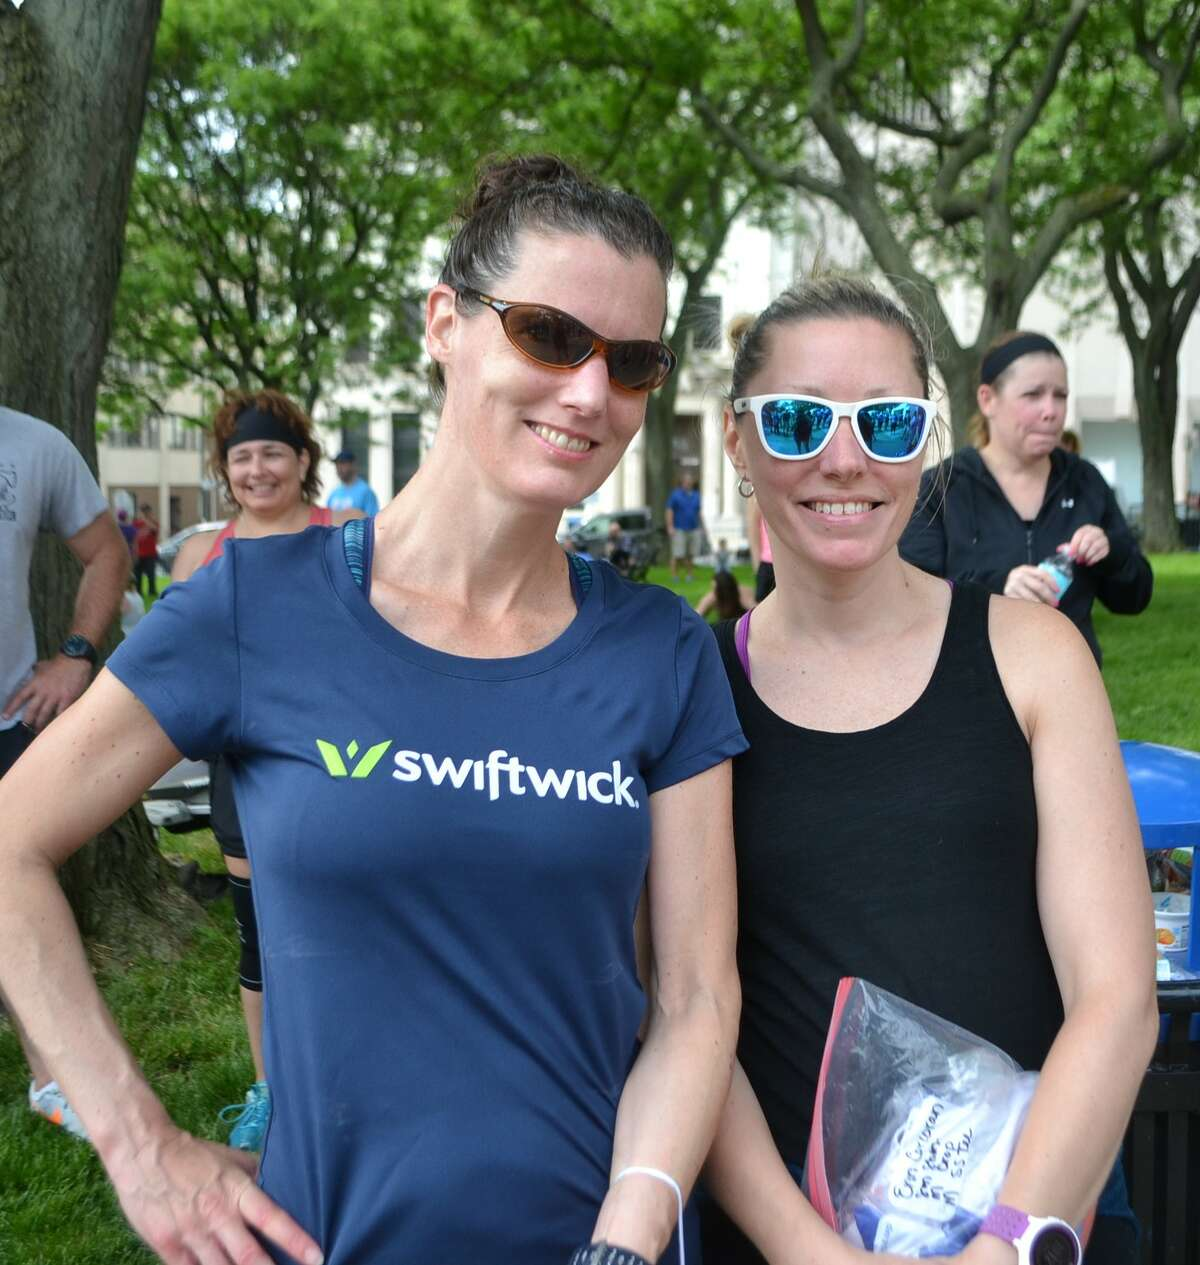 Were you Seen at the 40th annual Freihofer's Run for Women in downtown Albany on June 2, 2018?